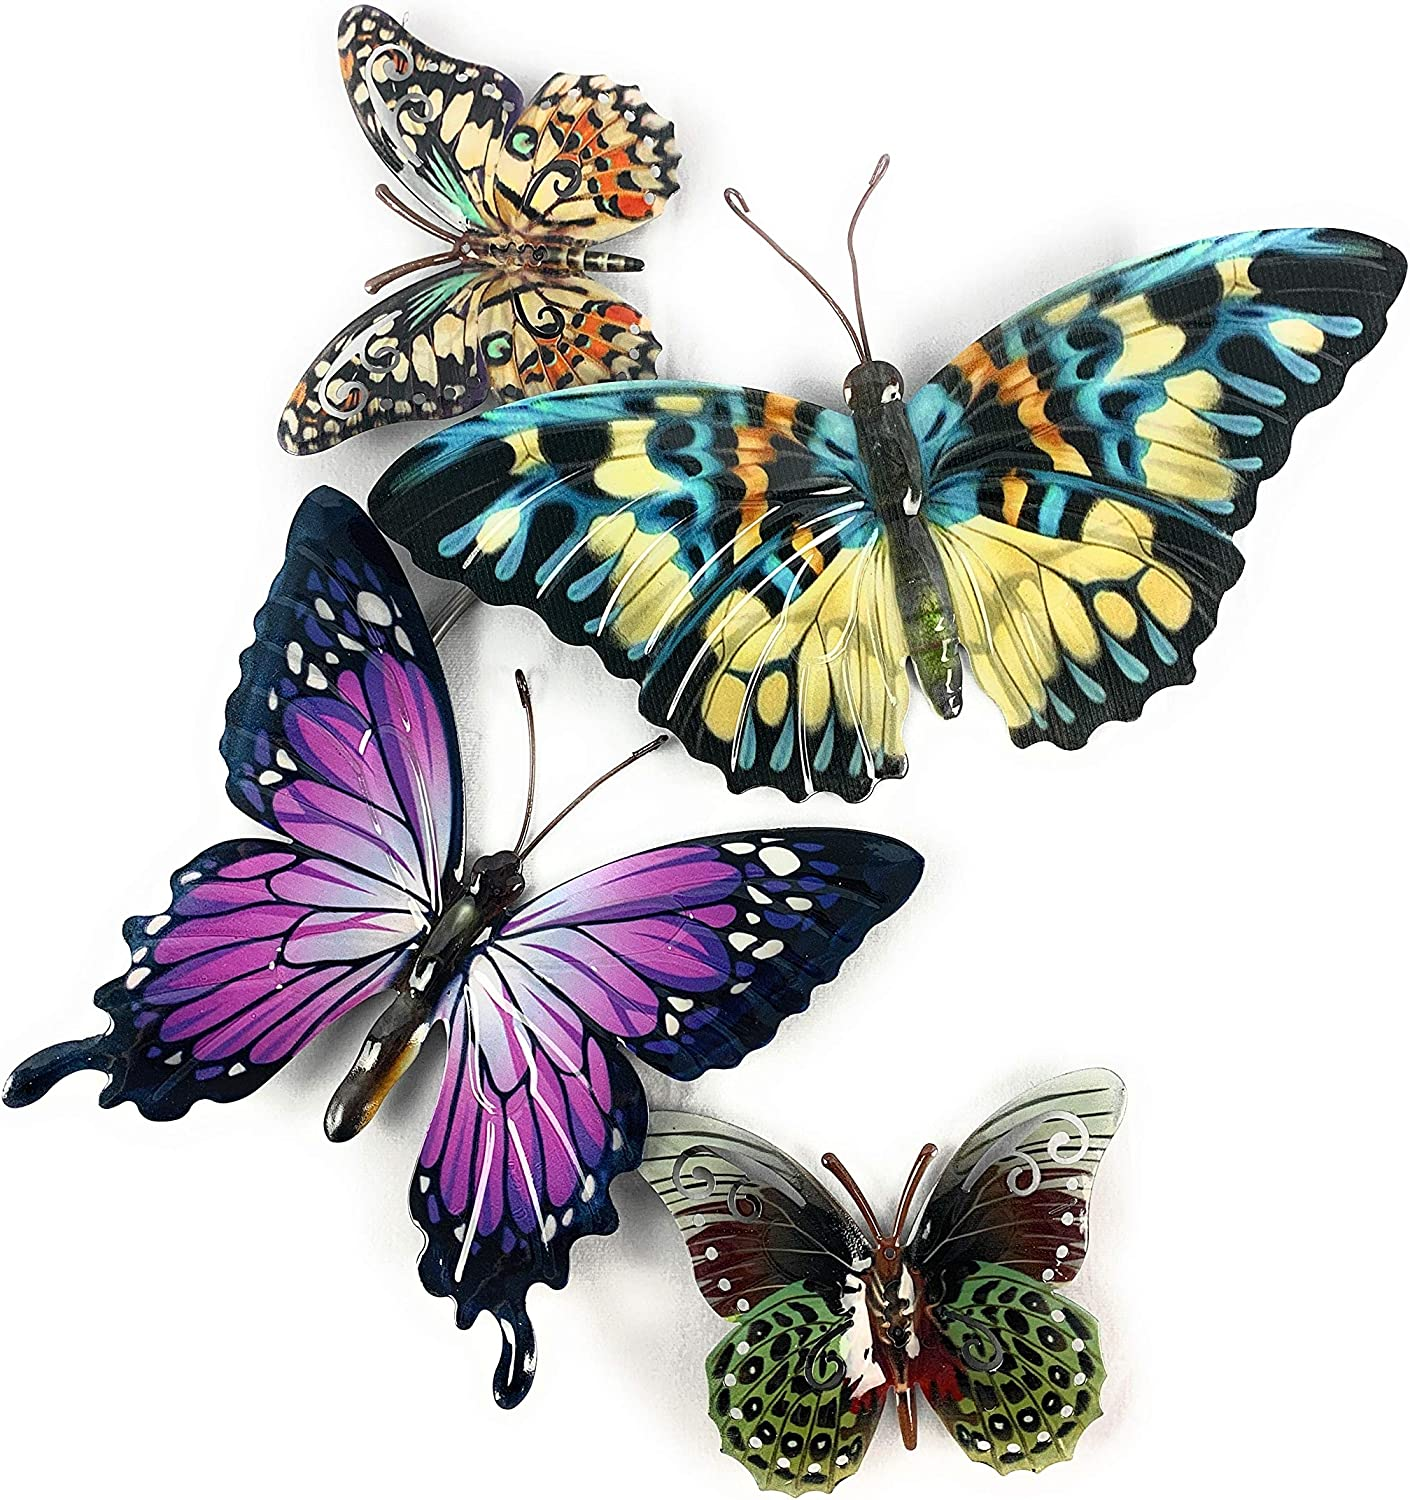 Metal Butterfly Wall Decor 3D Art Sculpture Hangings for Outdoor Back Yard, Garden Fence Patio, or Indoor, Living Room Bedroom Bathroom Hallway, 21.5X20 inches